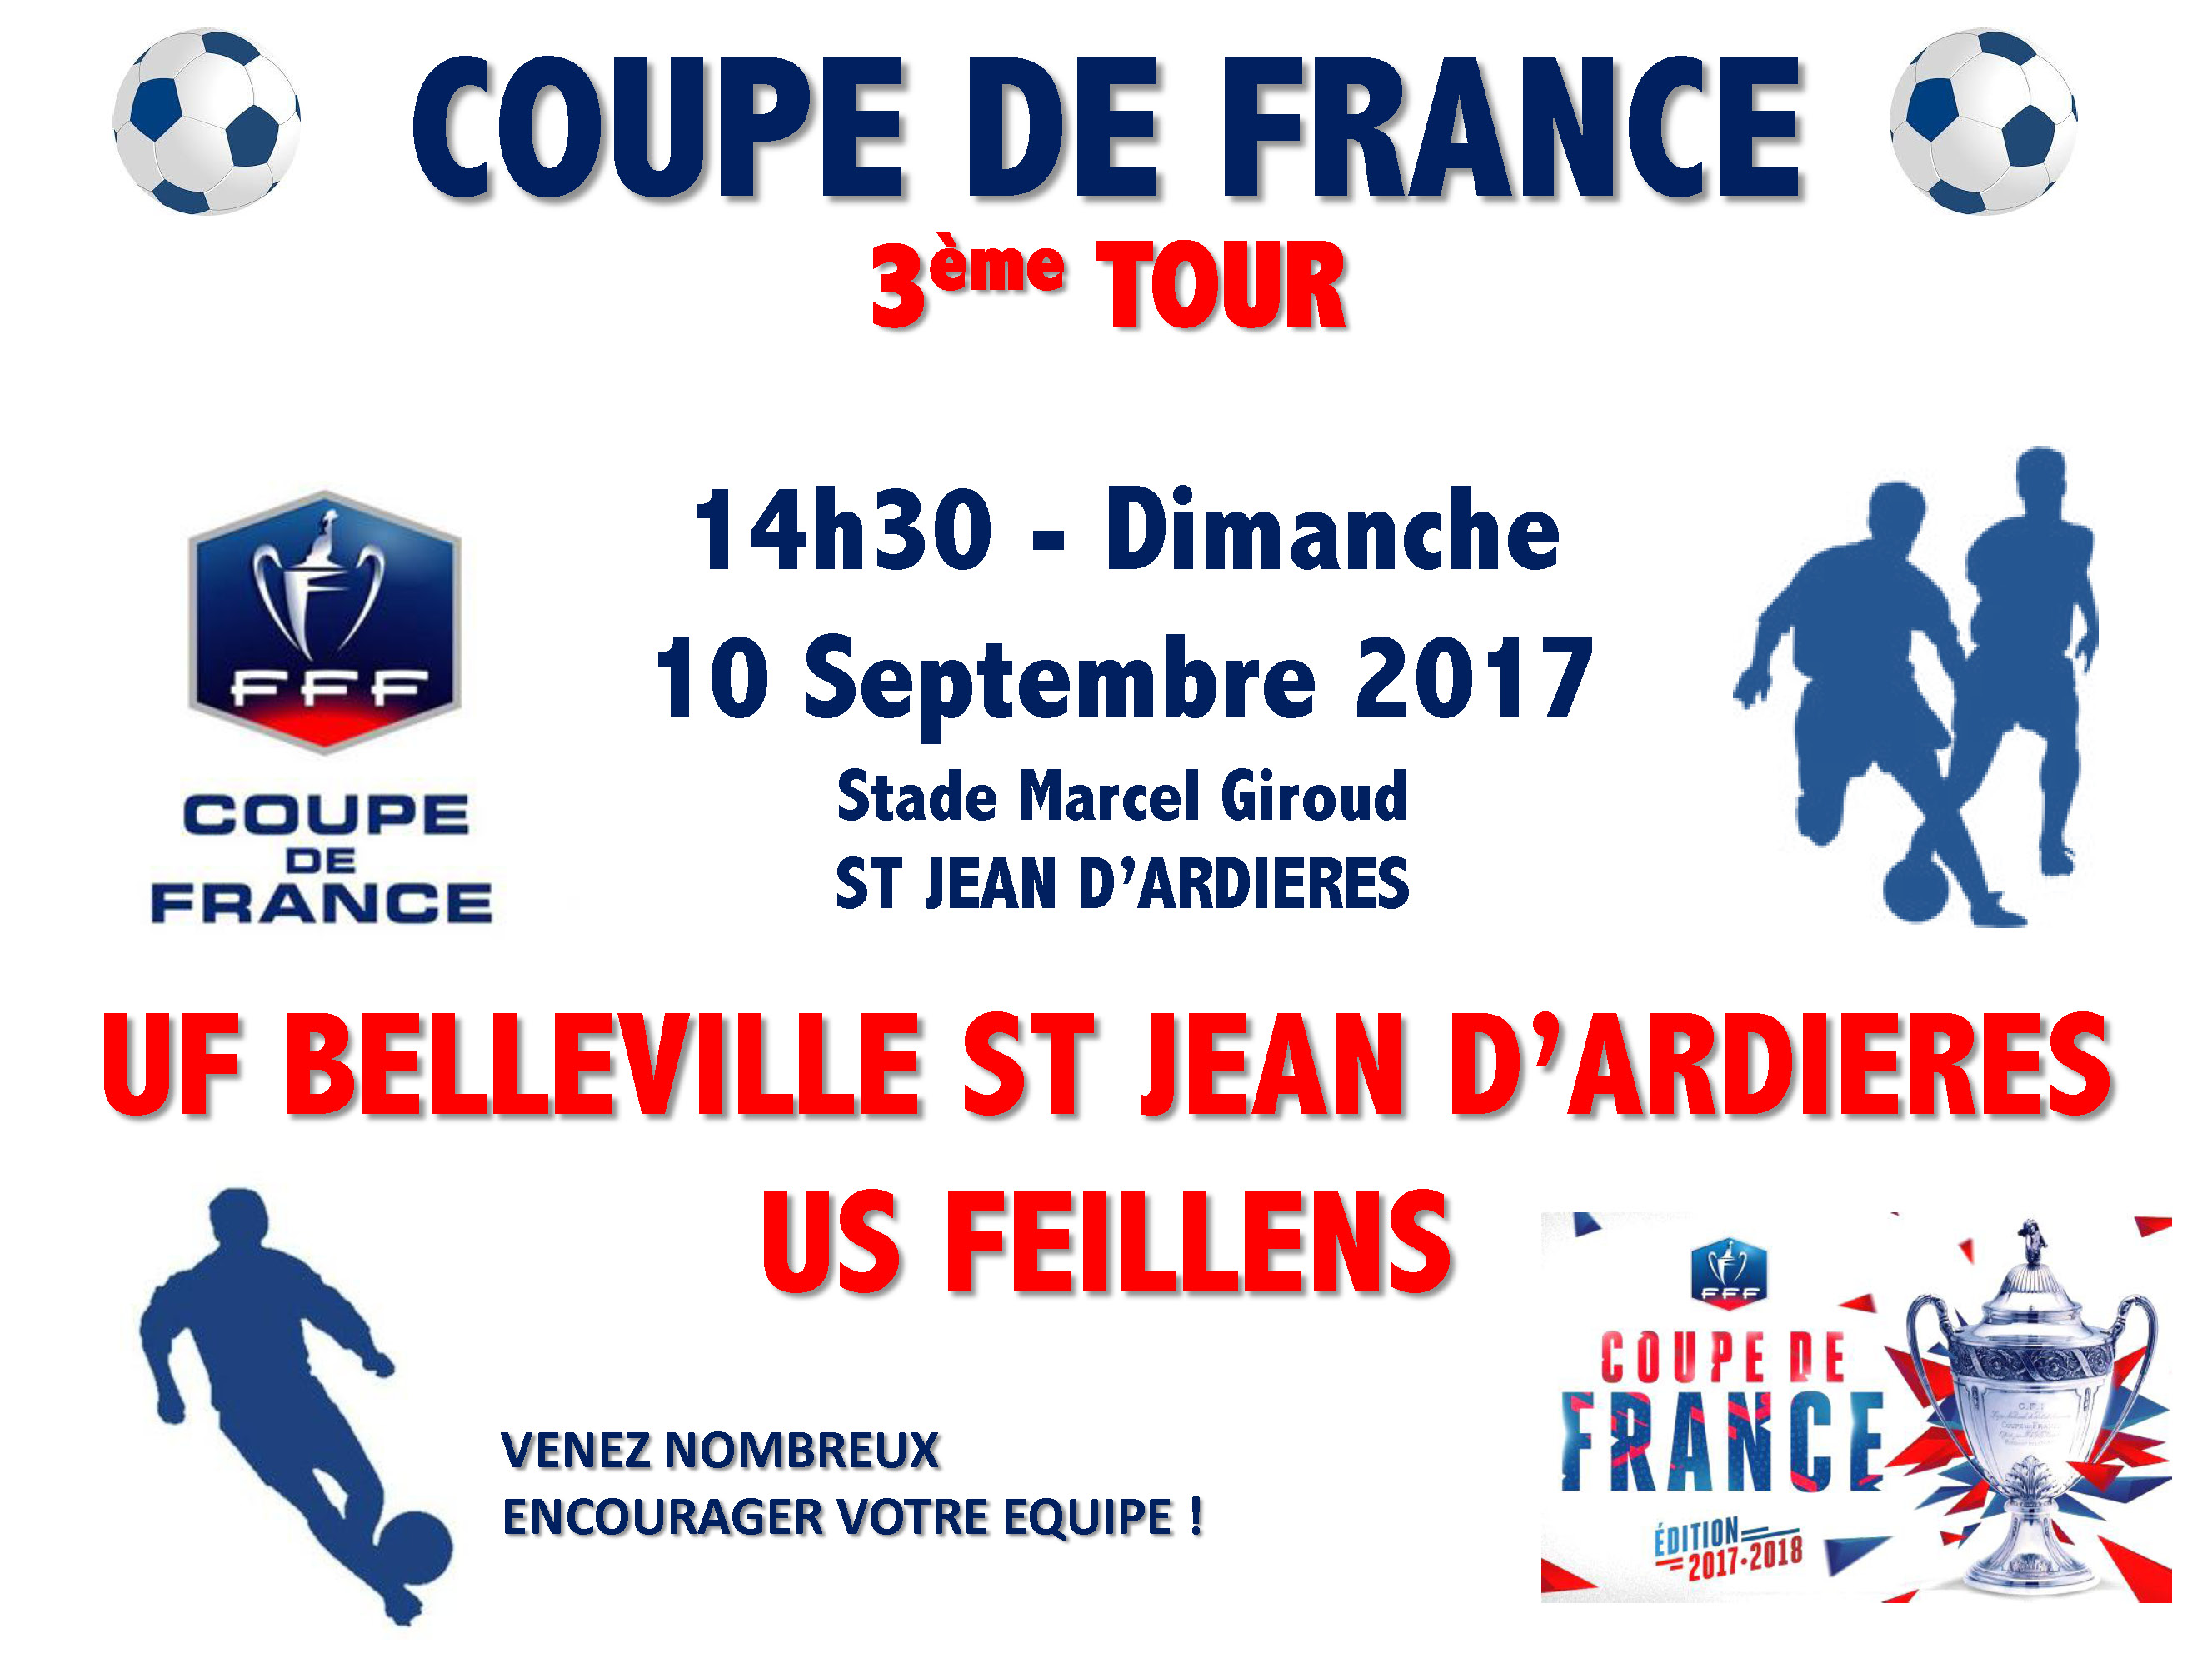 20170910_coupe france 3eme tour_Page_1.jpg